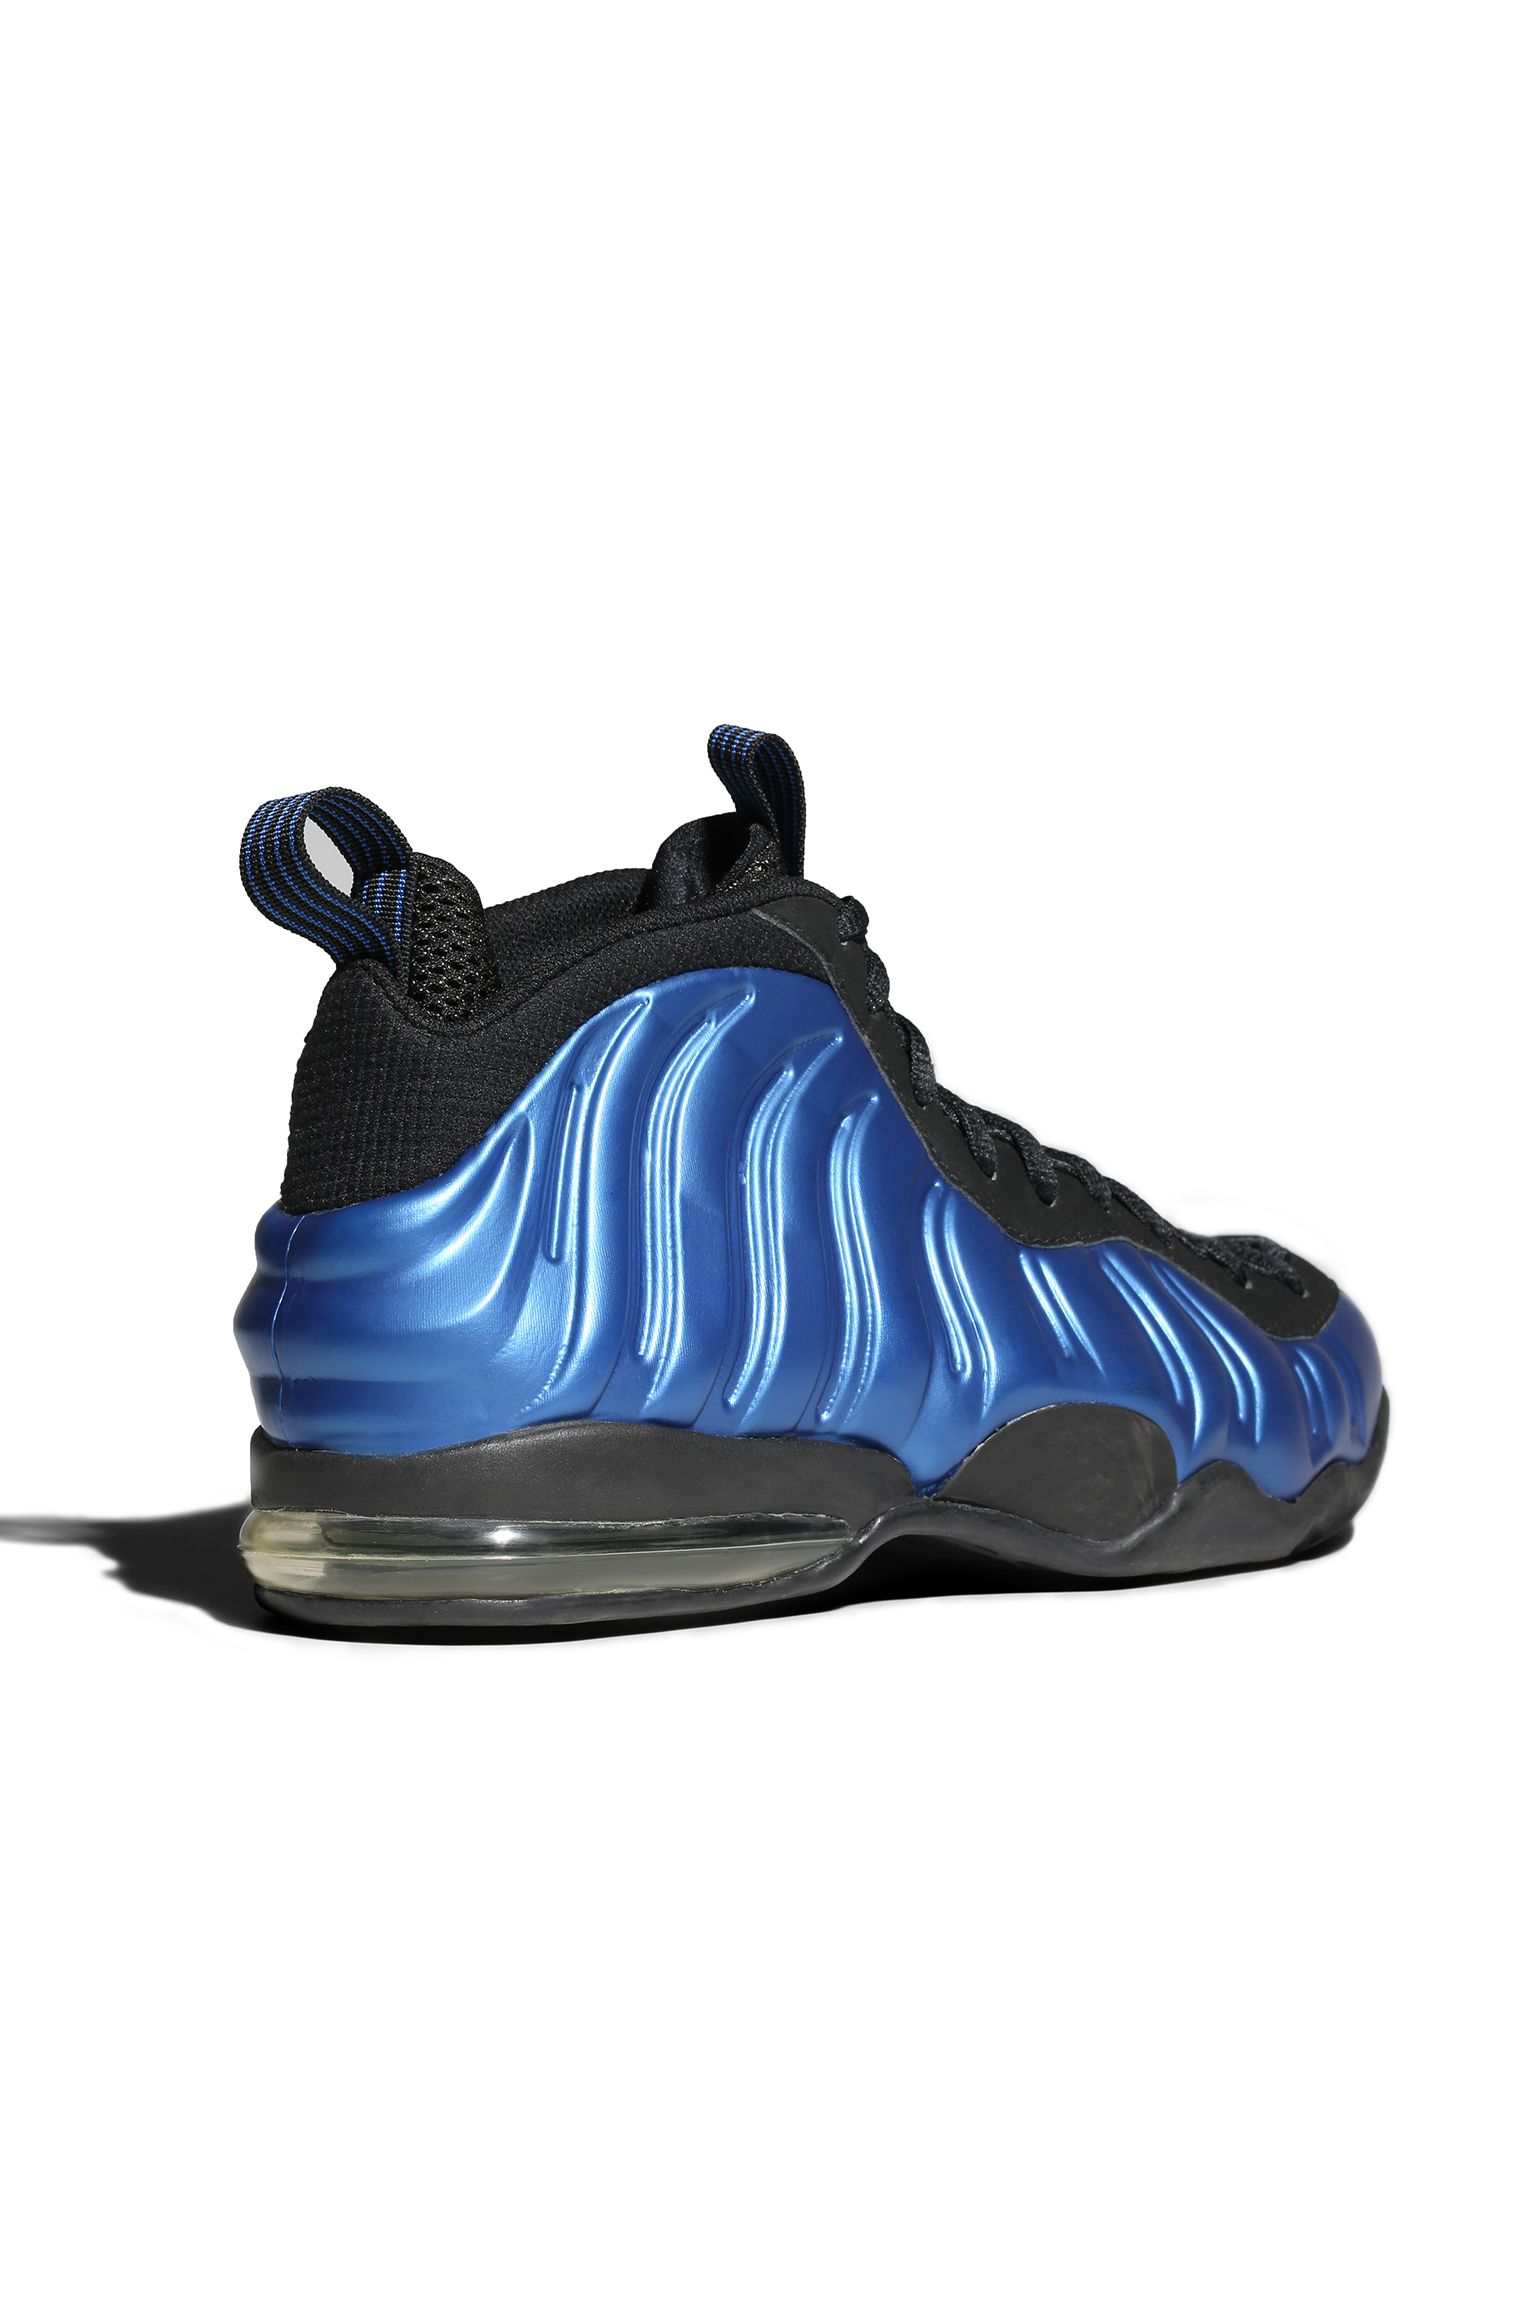 À l'origine du design : Nike Air Foamposite One